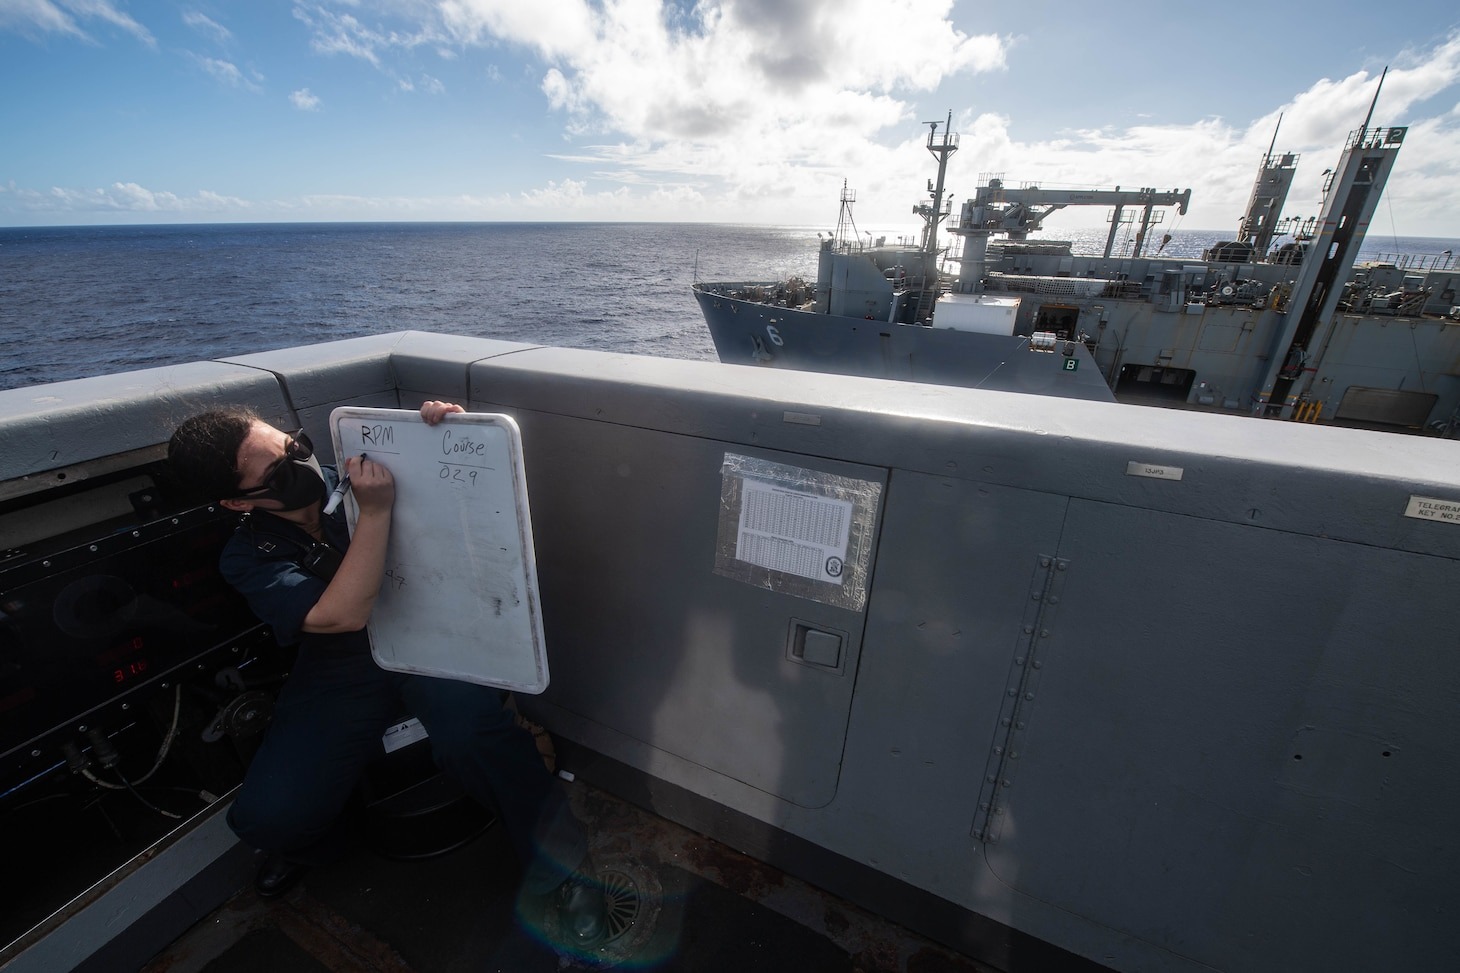 Lt. Christina Caracoza, from Los Angeles, notes course and speed changes aboard USS New Orleans (LPD 18) during a replenishment-at-sea with ship USNS Amelia Earhart (T-AKE 6).